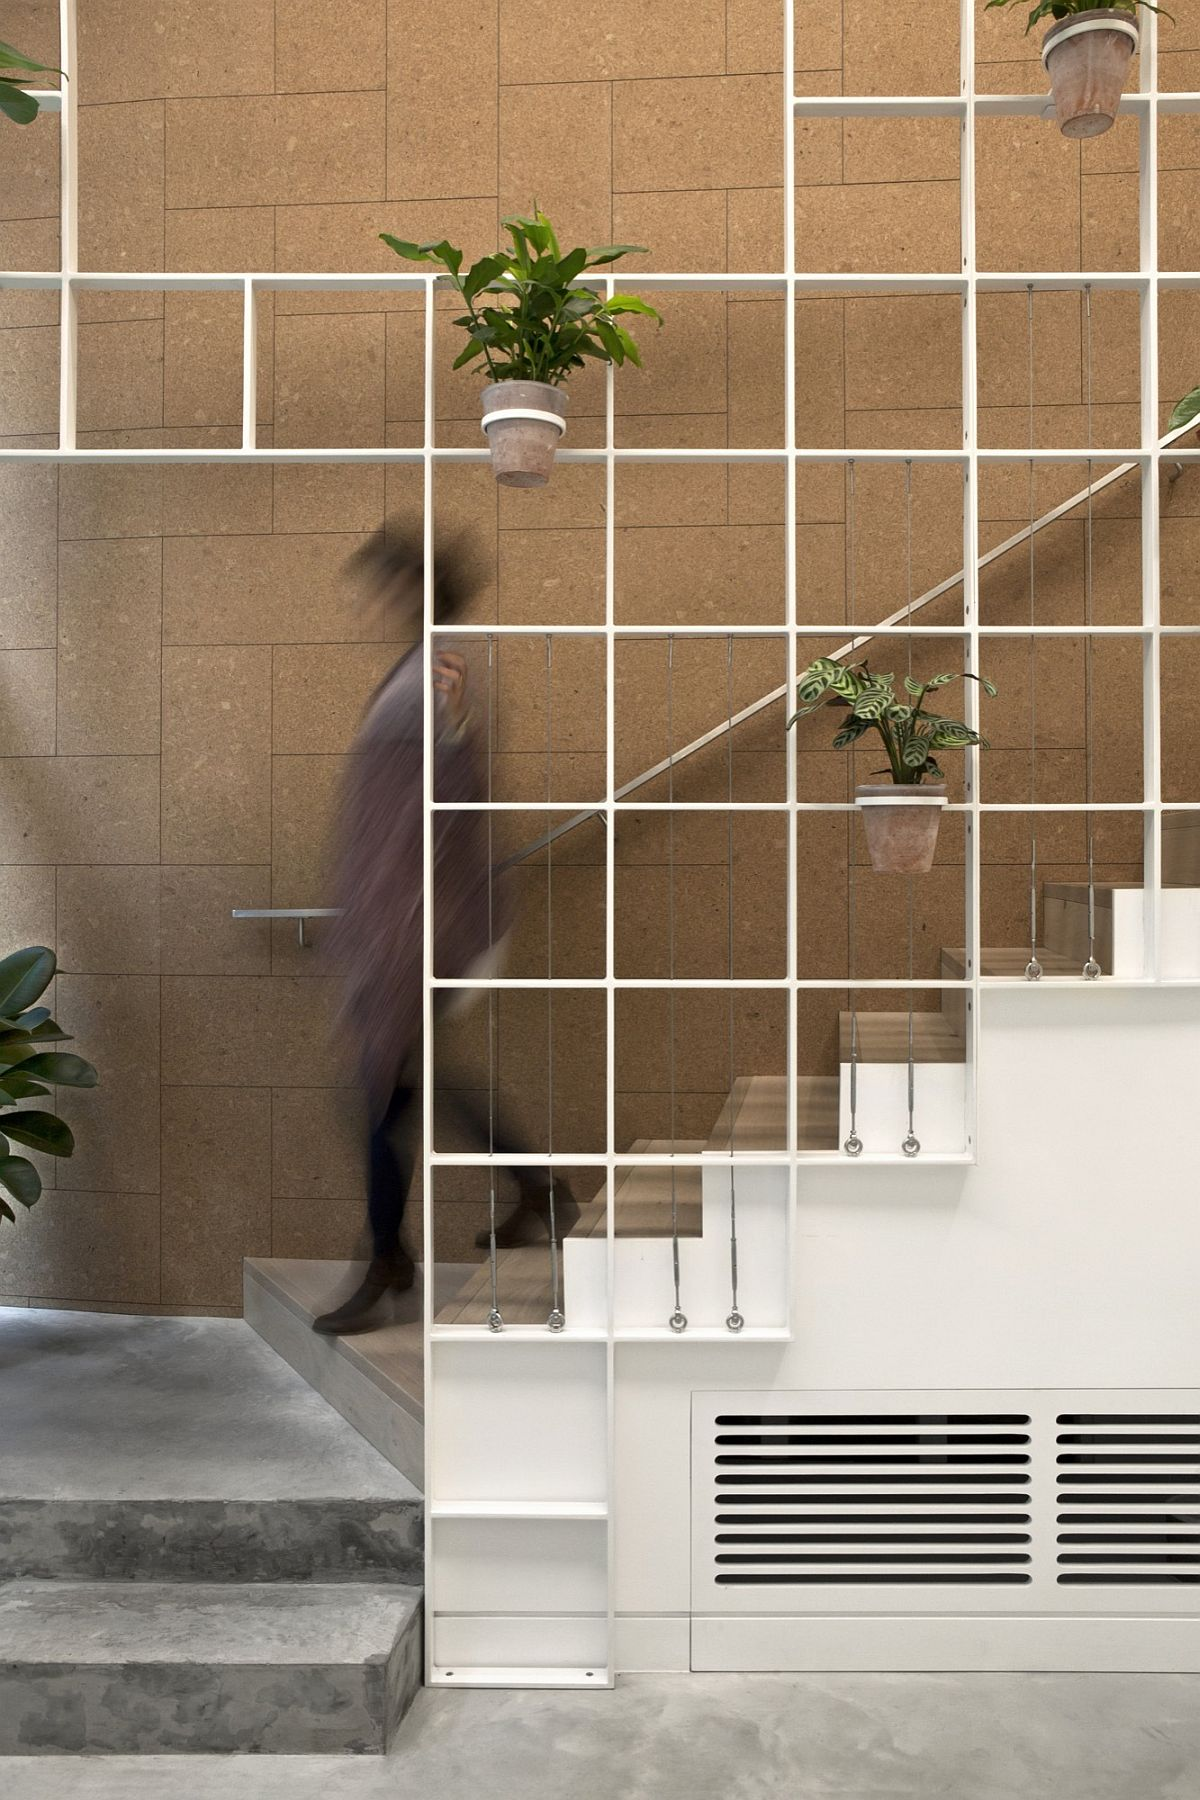 White-metal-grid-holds-plants-flowers-and-herbs